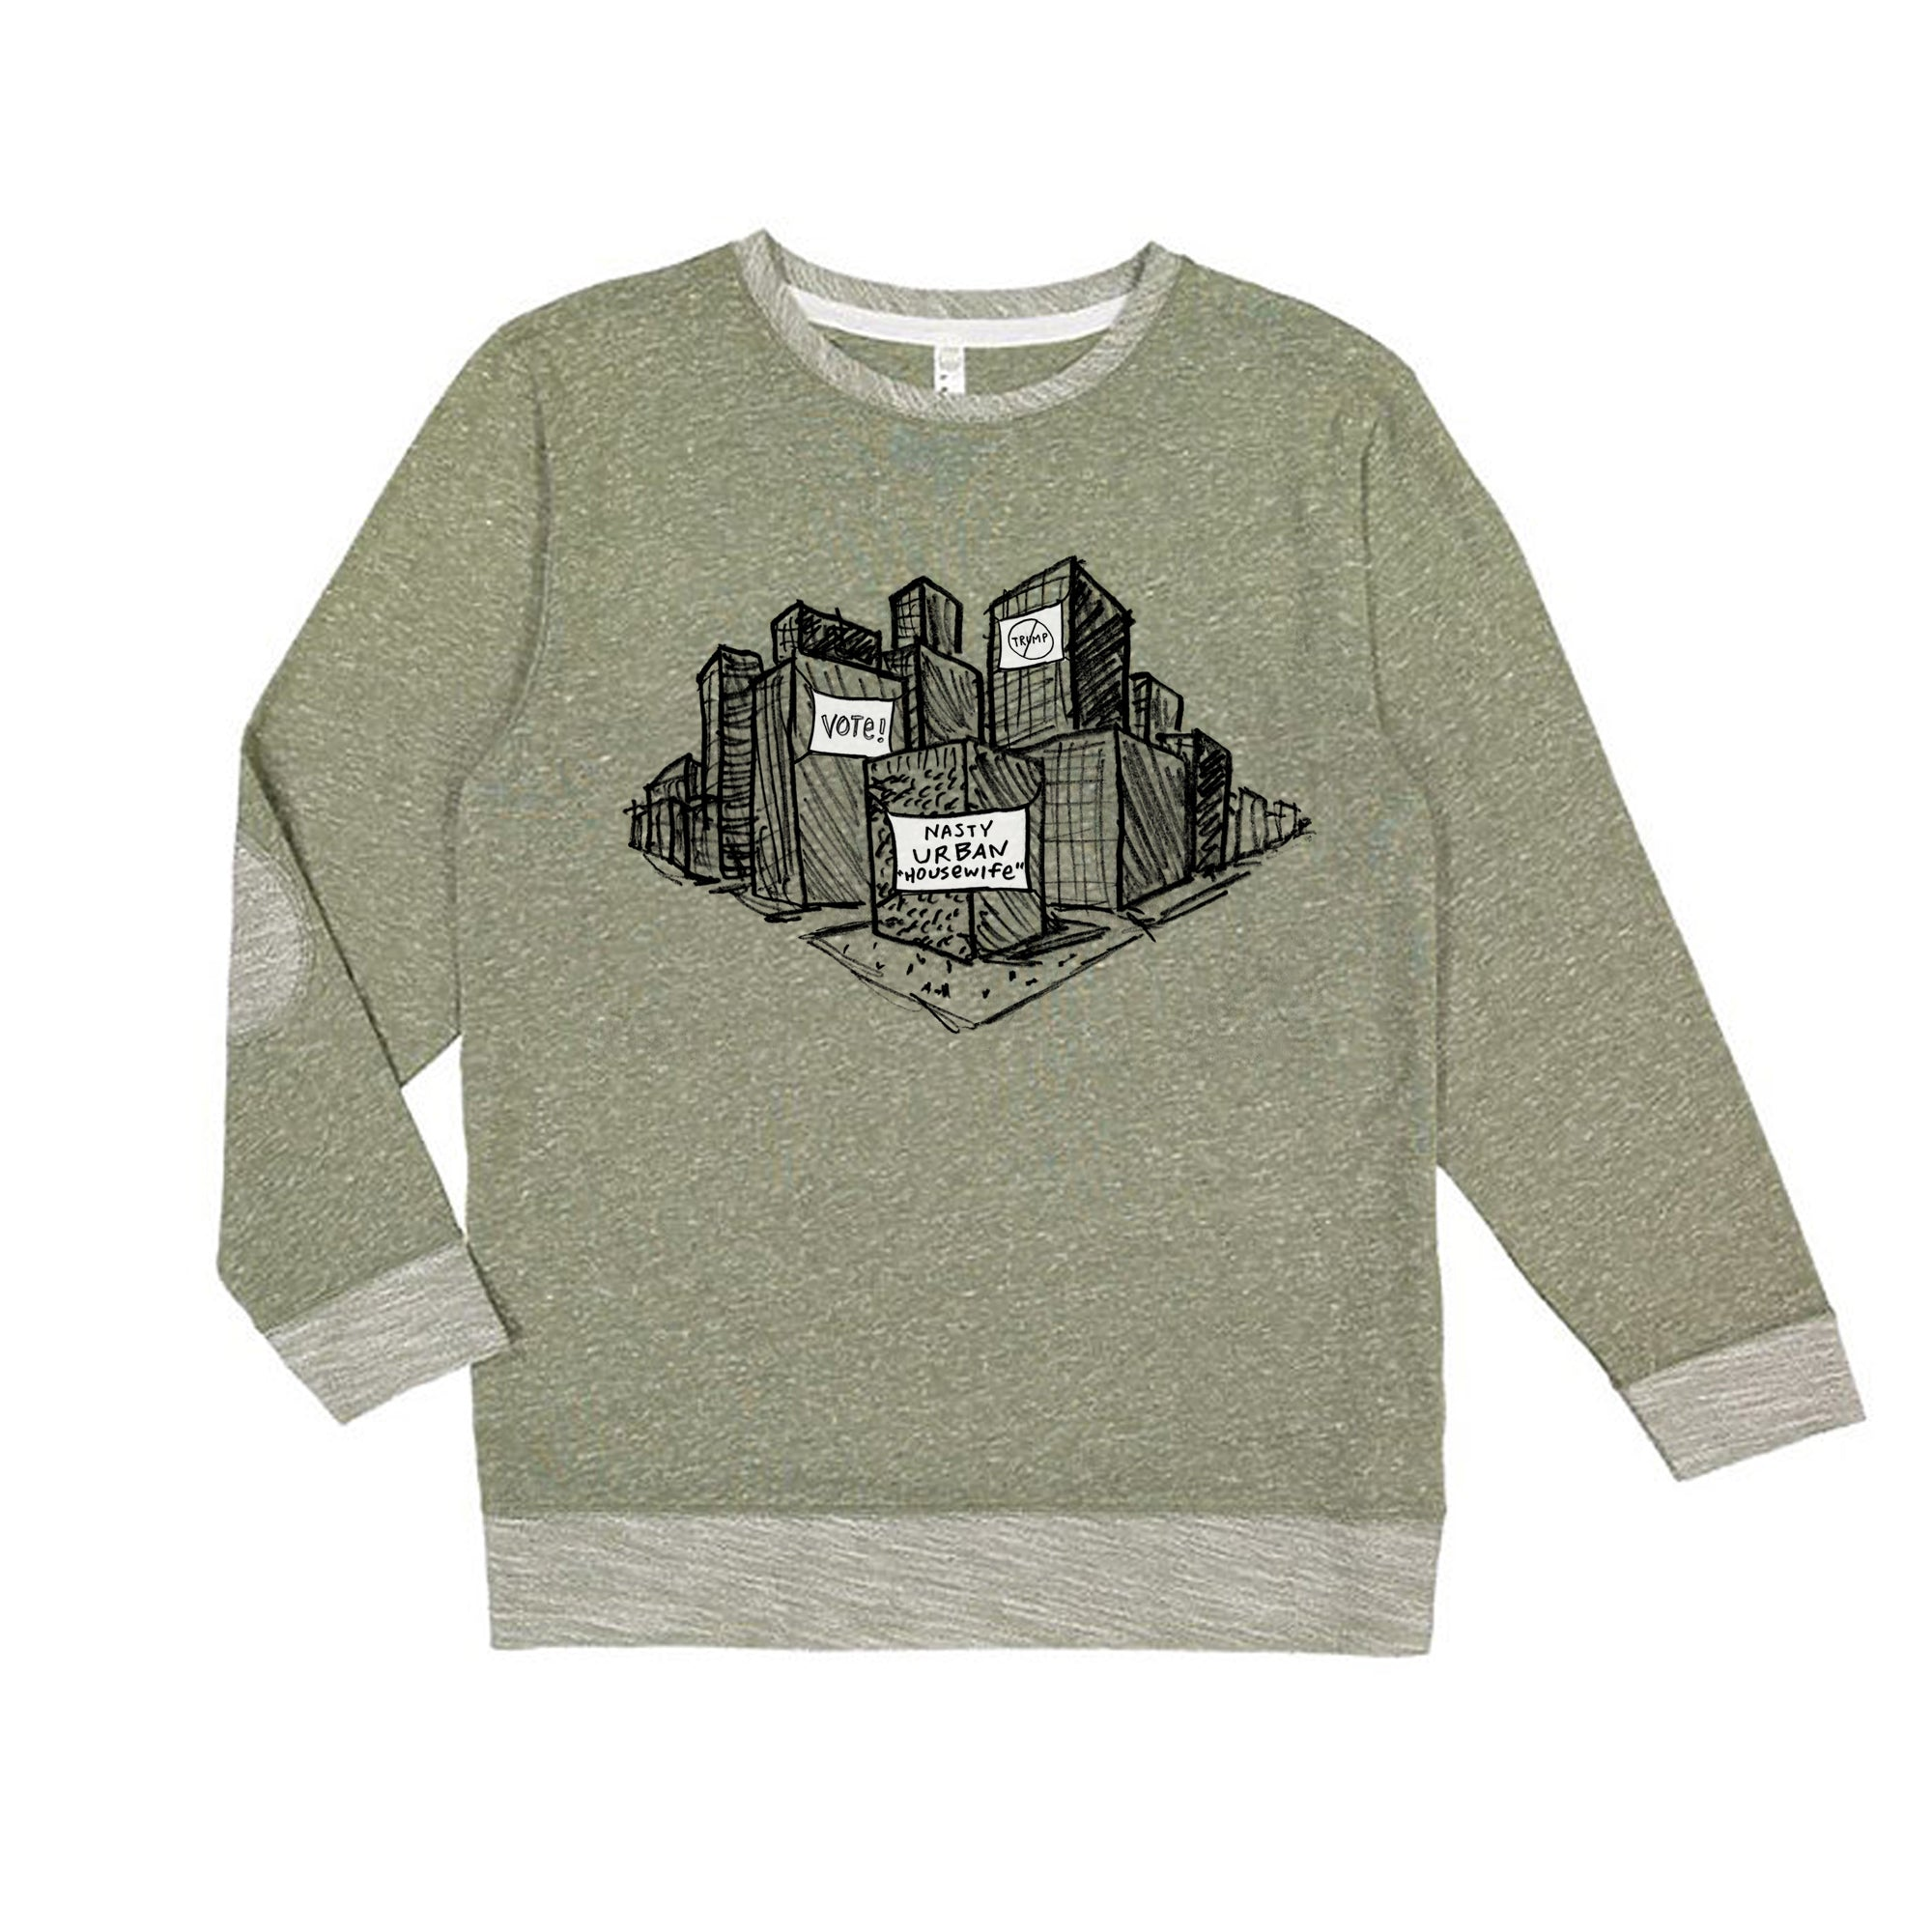 Nasty URBAN Housewife : Unisex Melange Sweatshirt